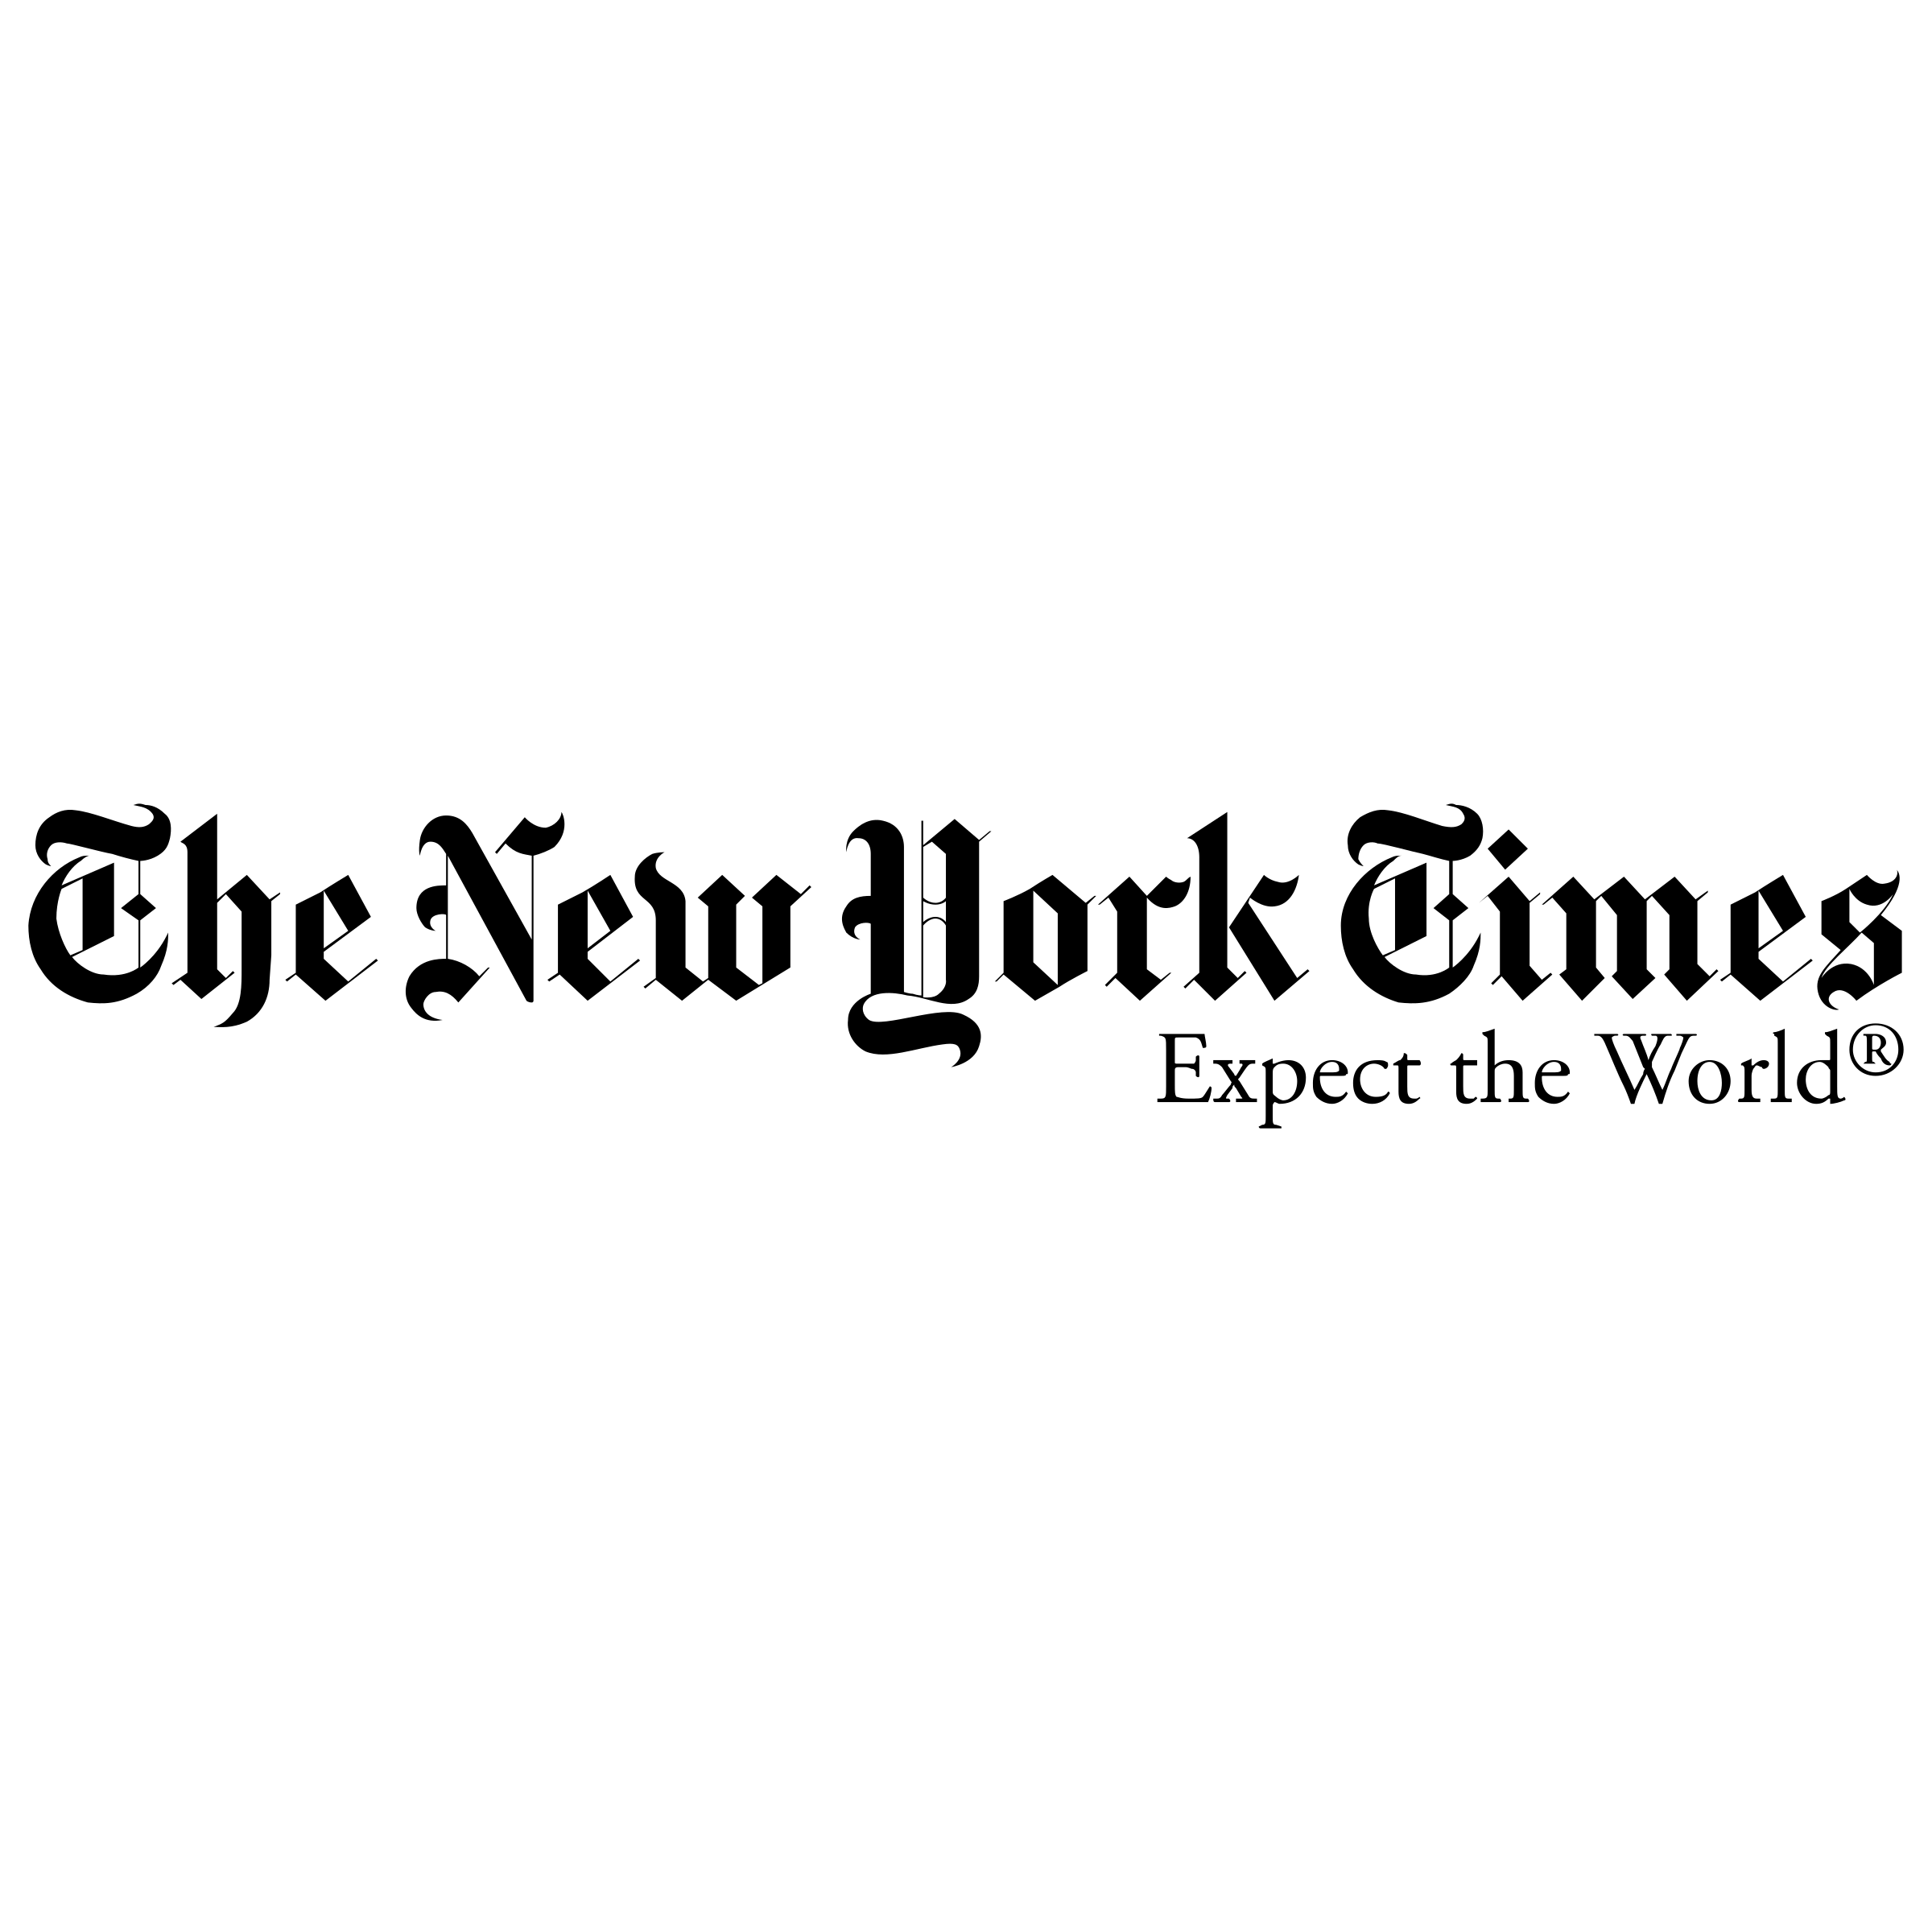 New york times png. The logo transparent heteroclito